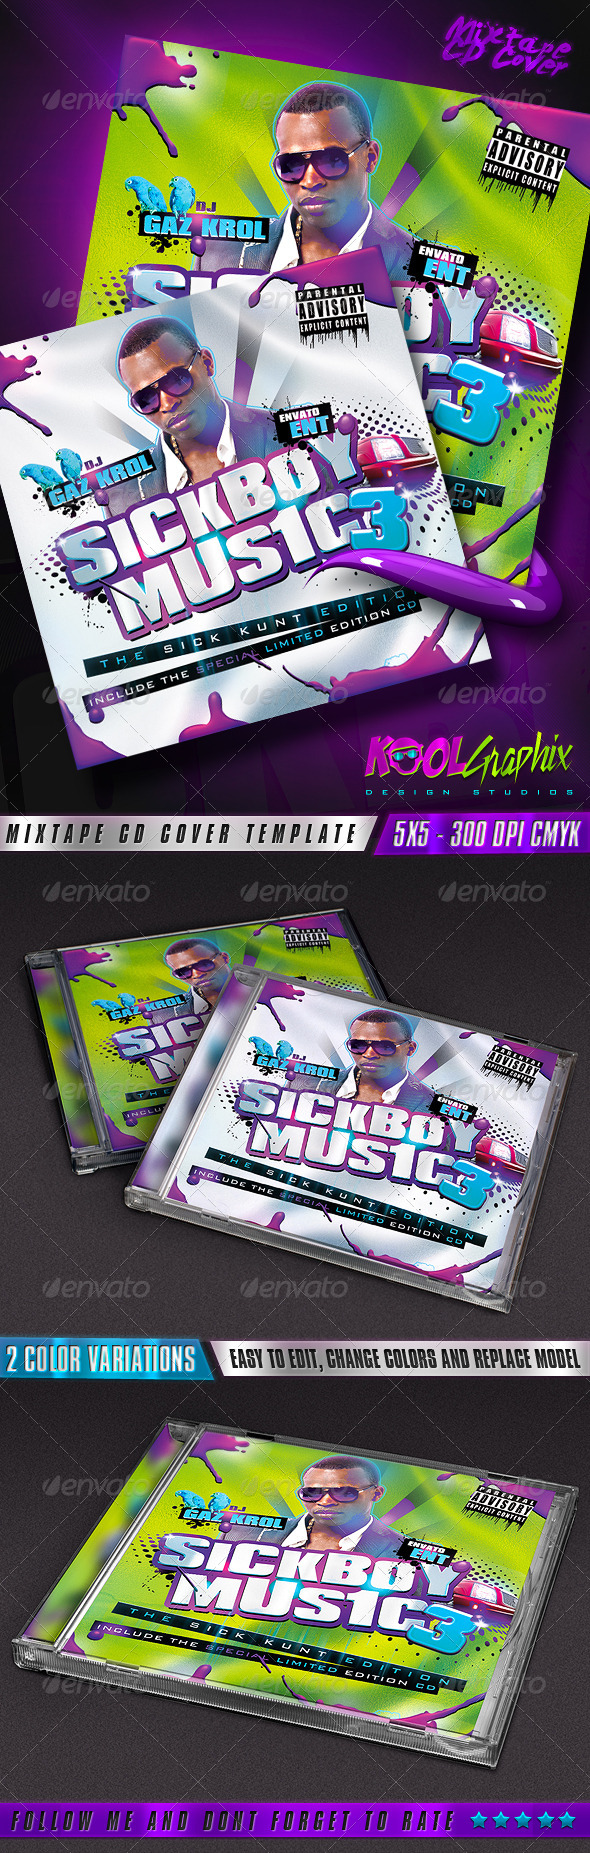 SickBoy Music - Mixtape CD Cover  - CD & DVD artwork Print Templates